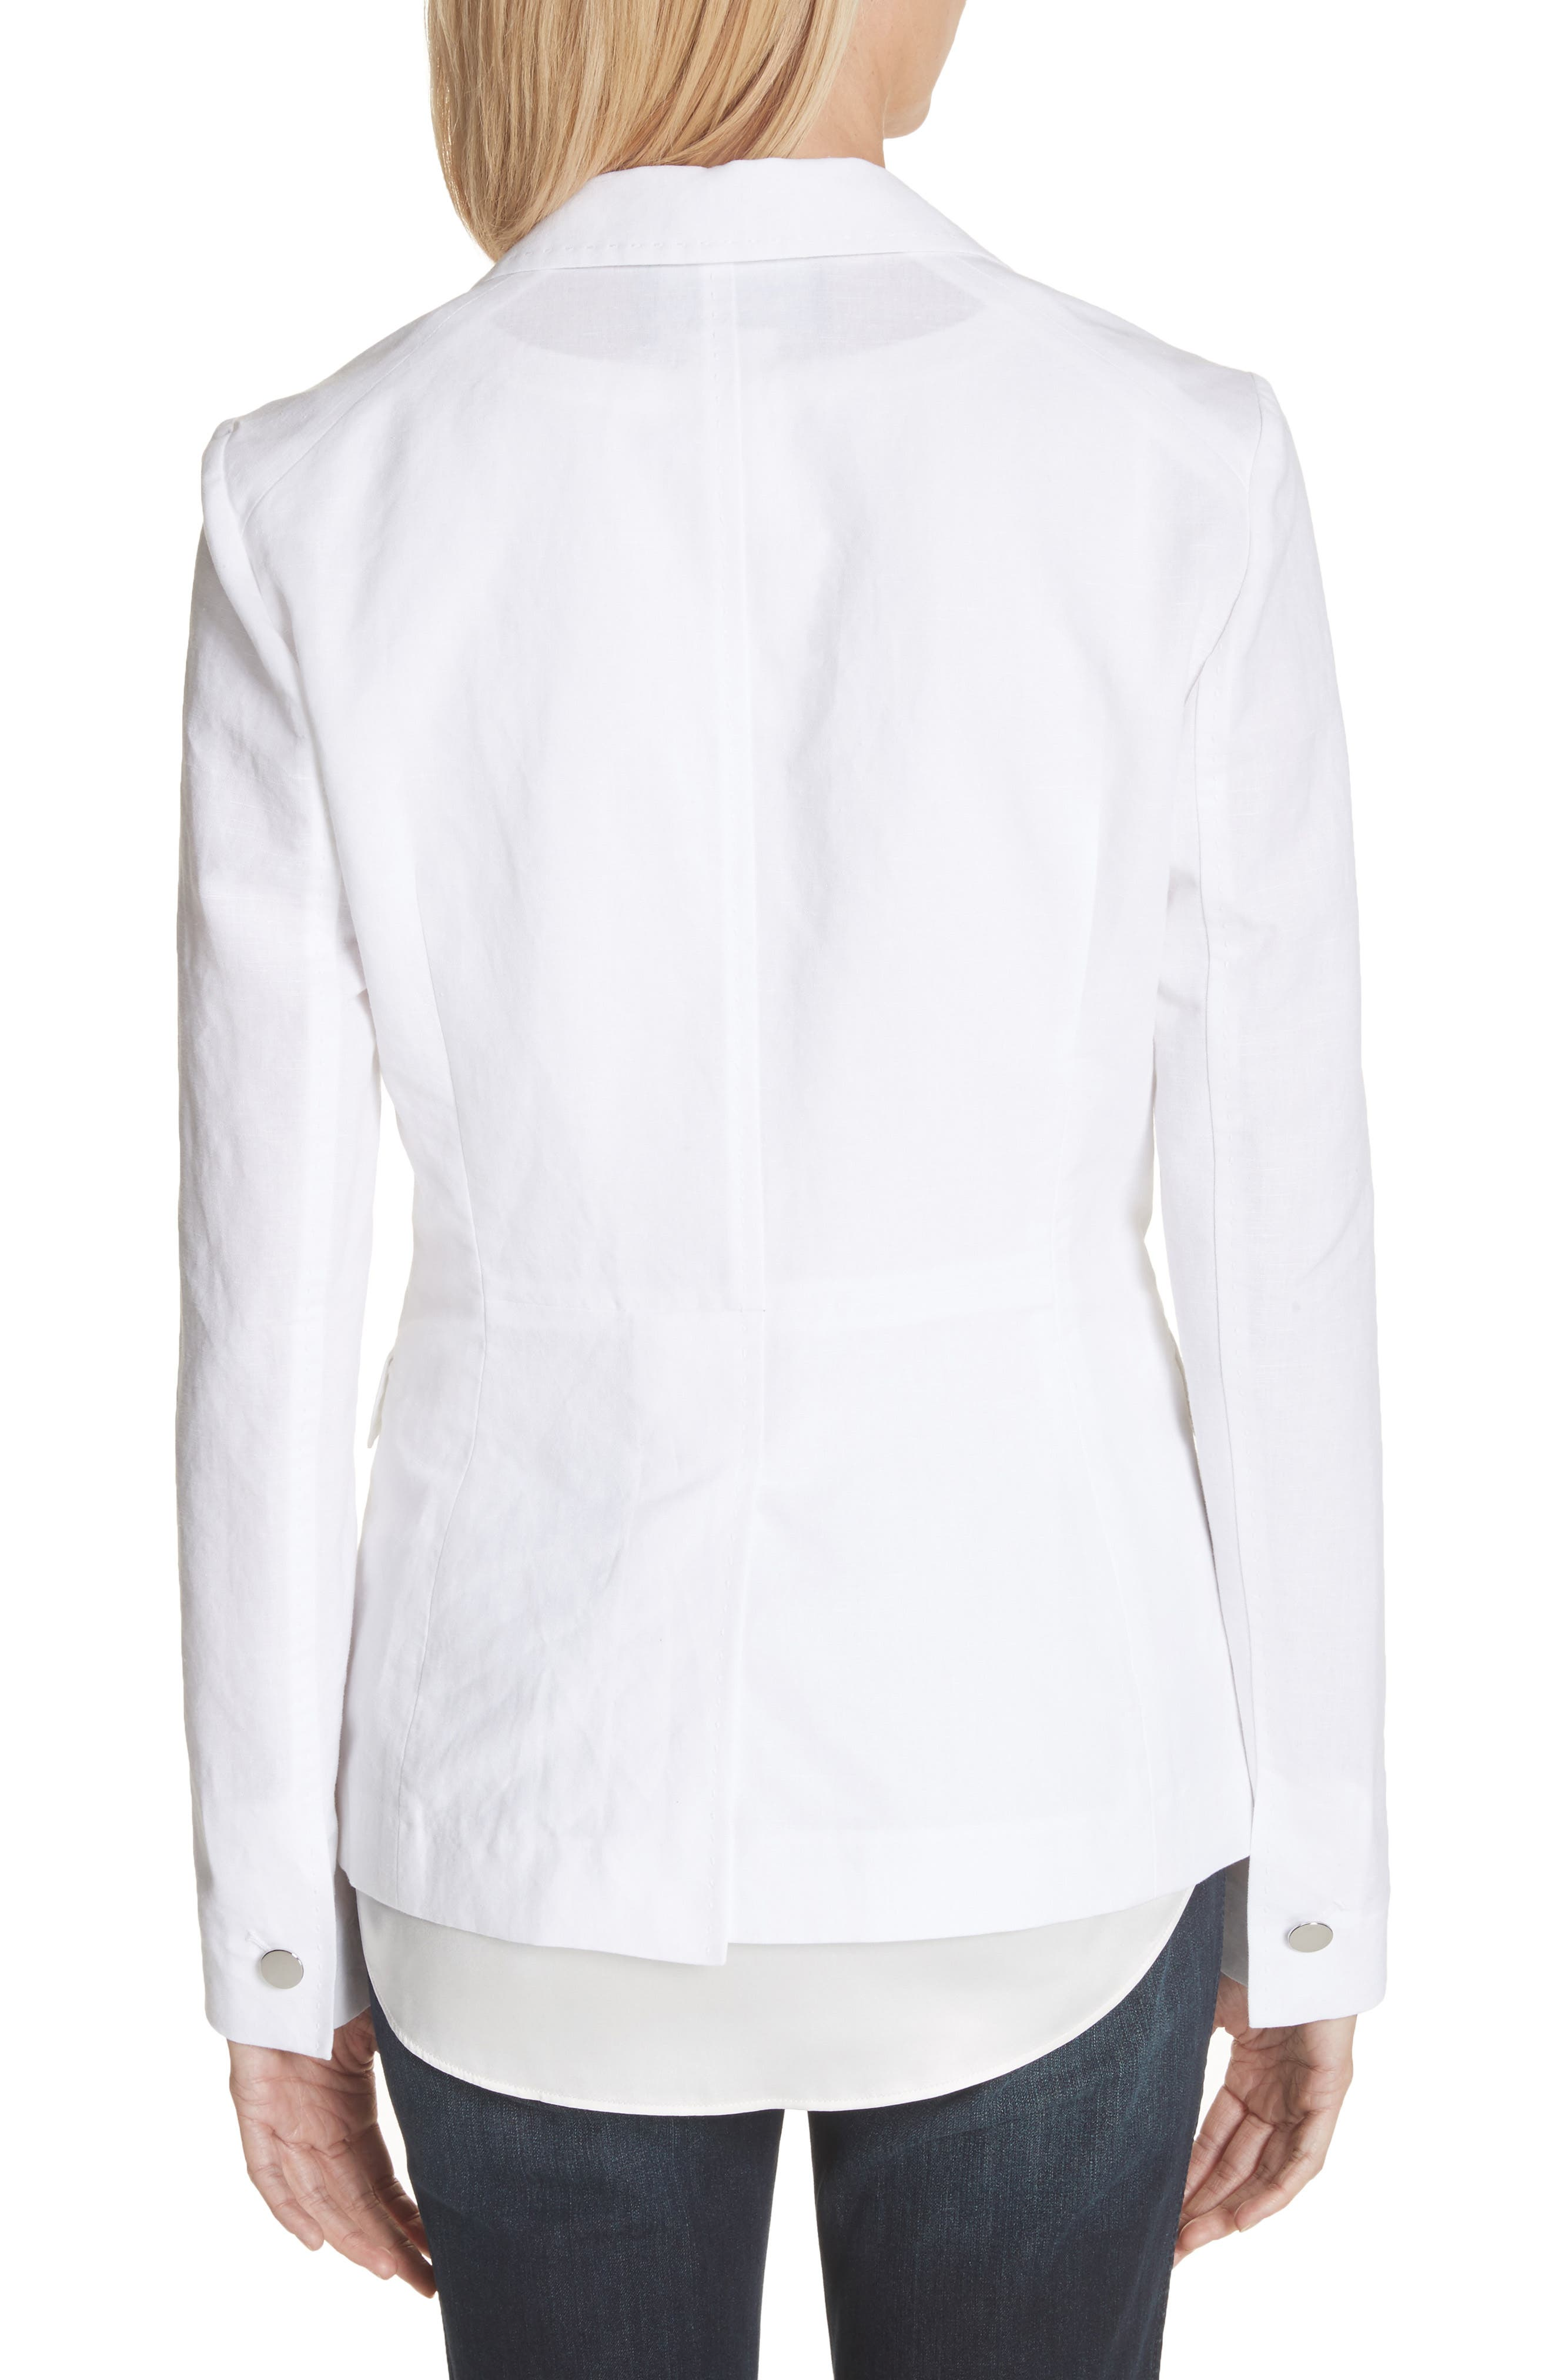 Lyndon Courtly Cotton & Linen Jacket,                             Alternate thumbnail 2, color,                             White